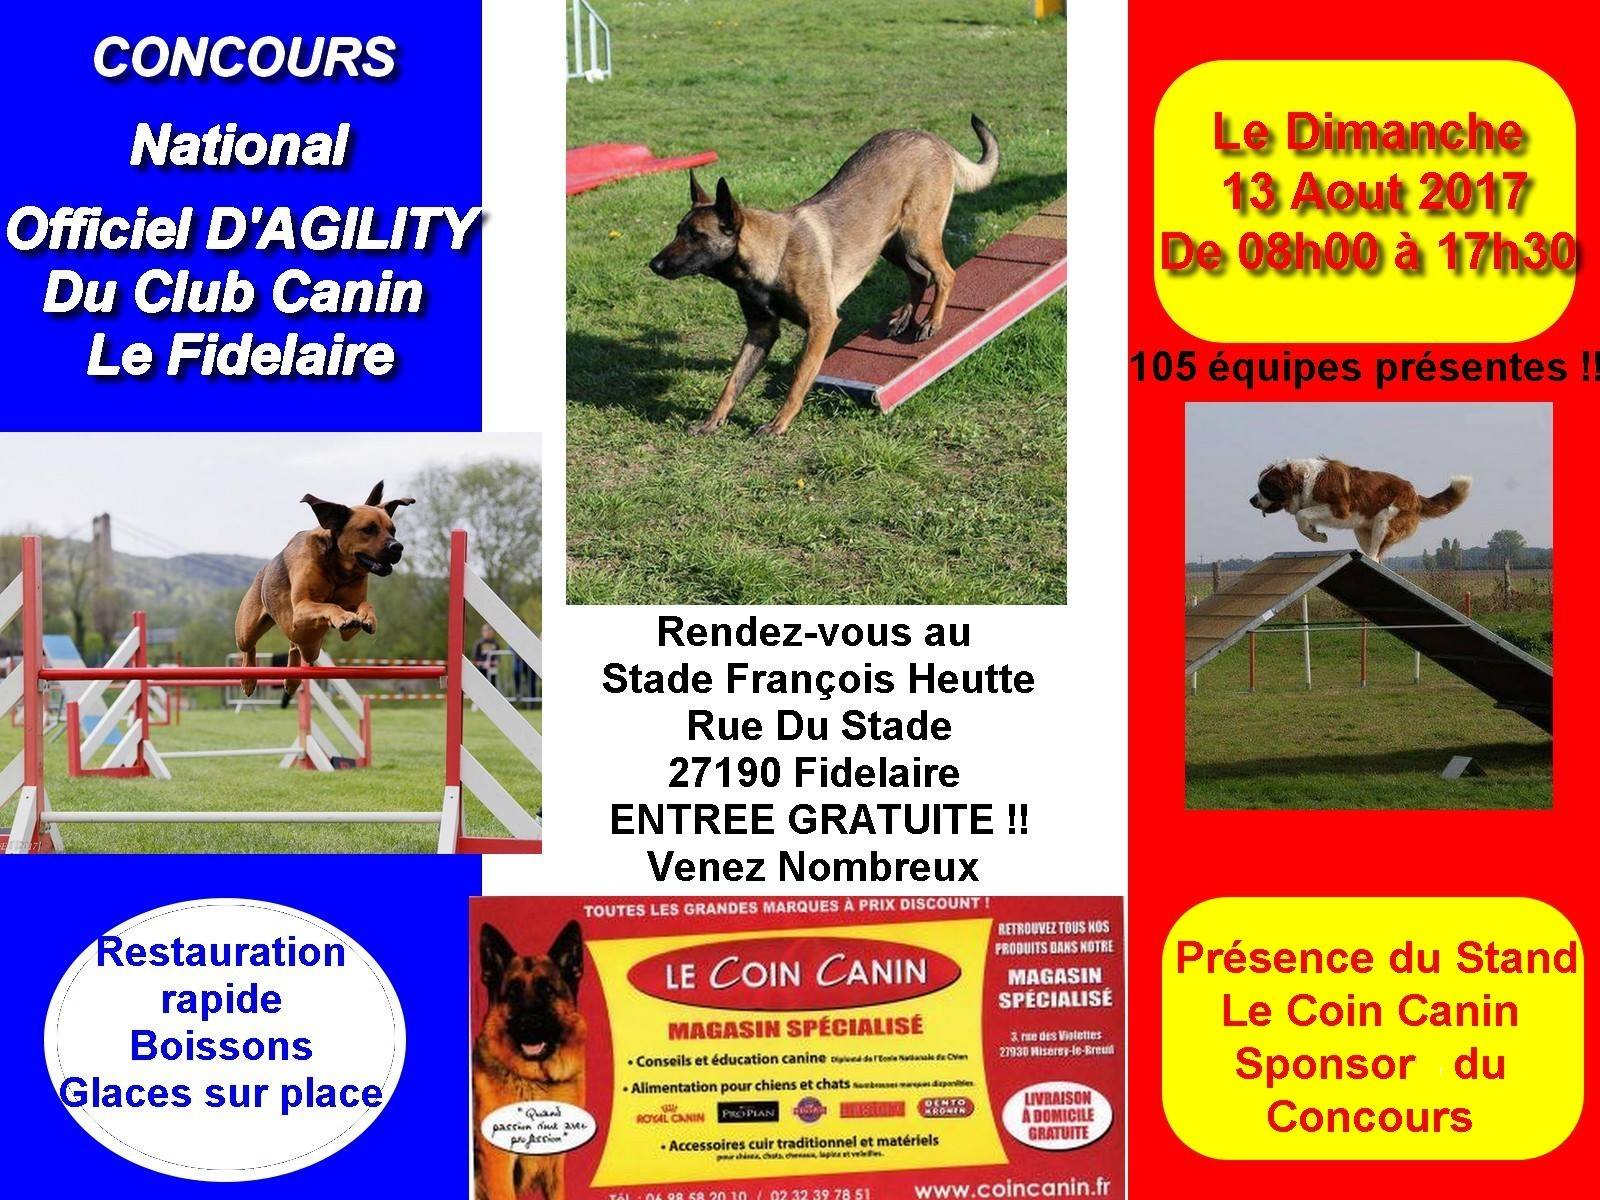 Concours national d'agility